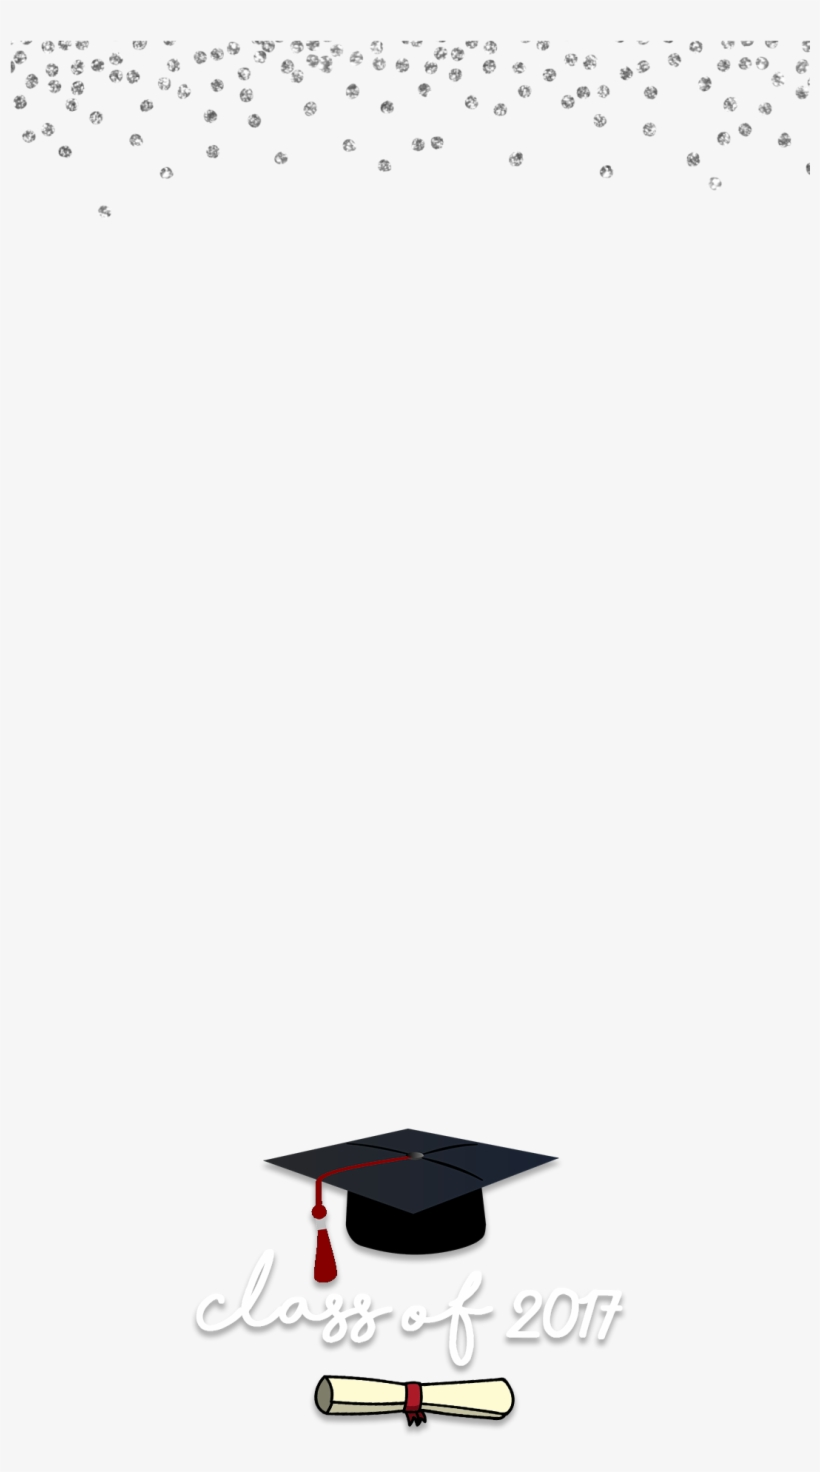 2018 graduation blocks clipart png jpg library library Image Result For Graduation Geofilter Graduation Day, - Snapchat ... jpg library library